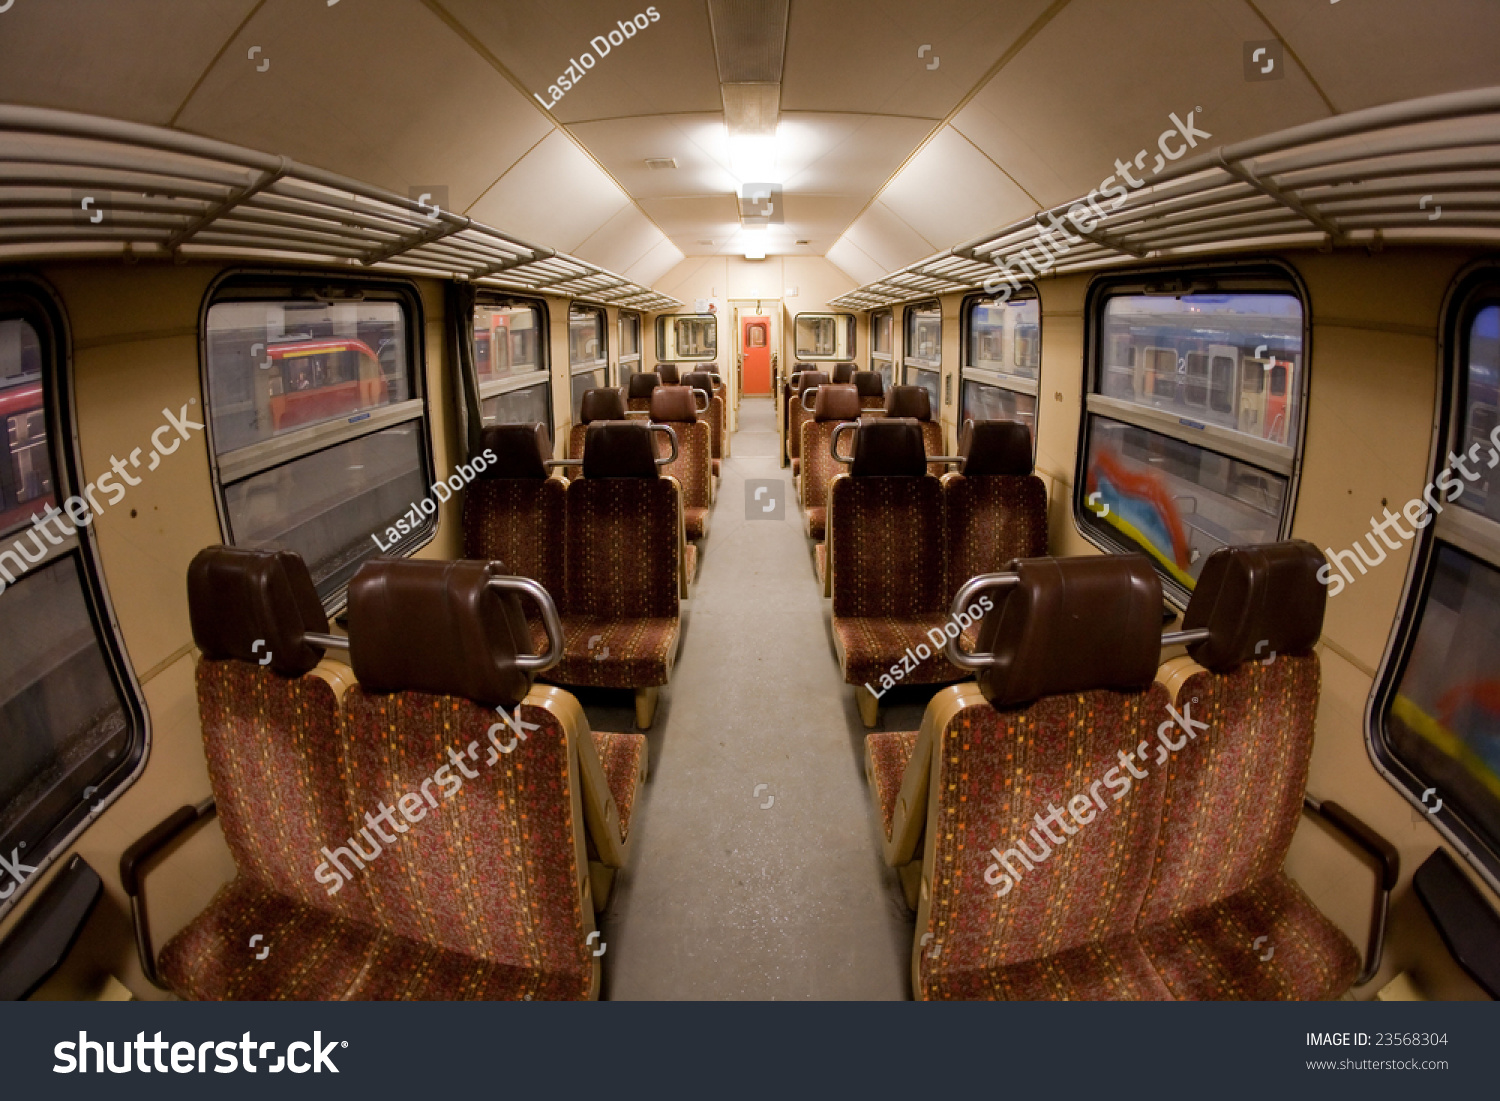 railroad passanger car interior shot with fish eye lens stock photo 23568304 shutterstock. Black Bedroom Furniture Sets. Home Design Ideas